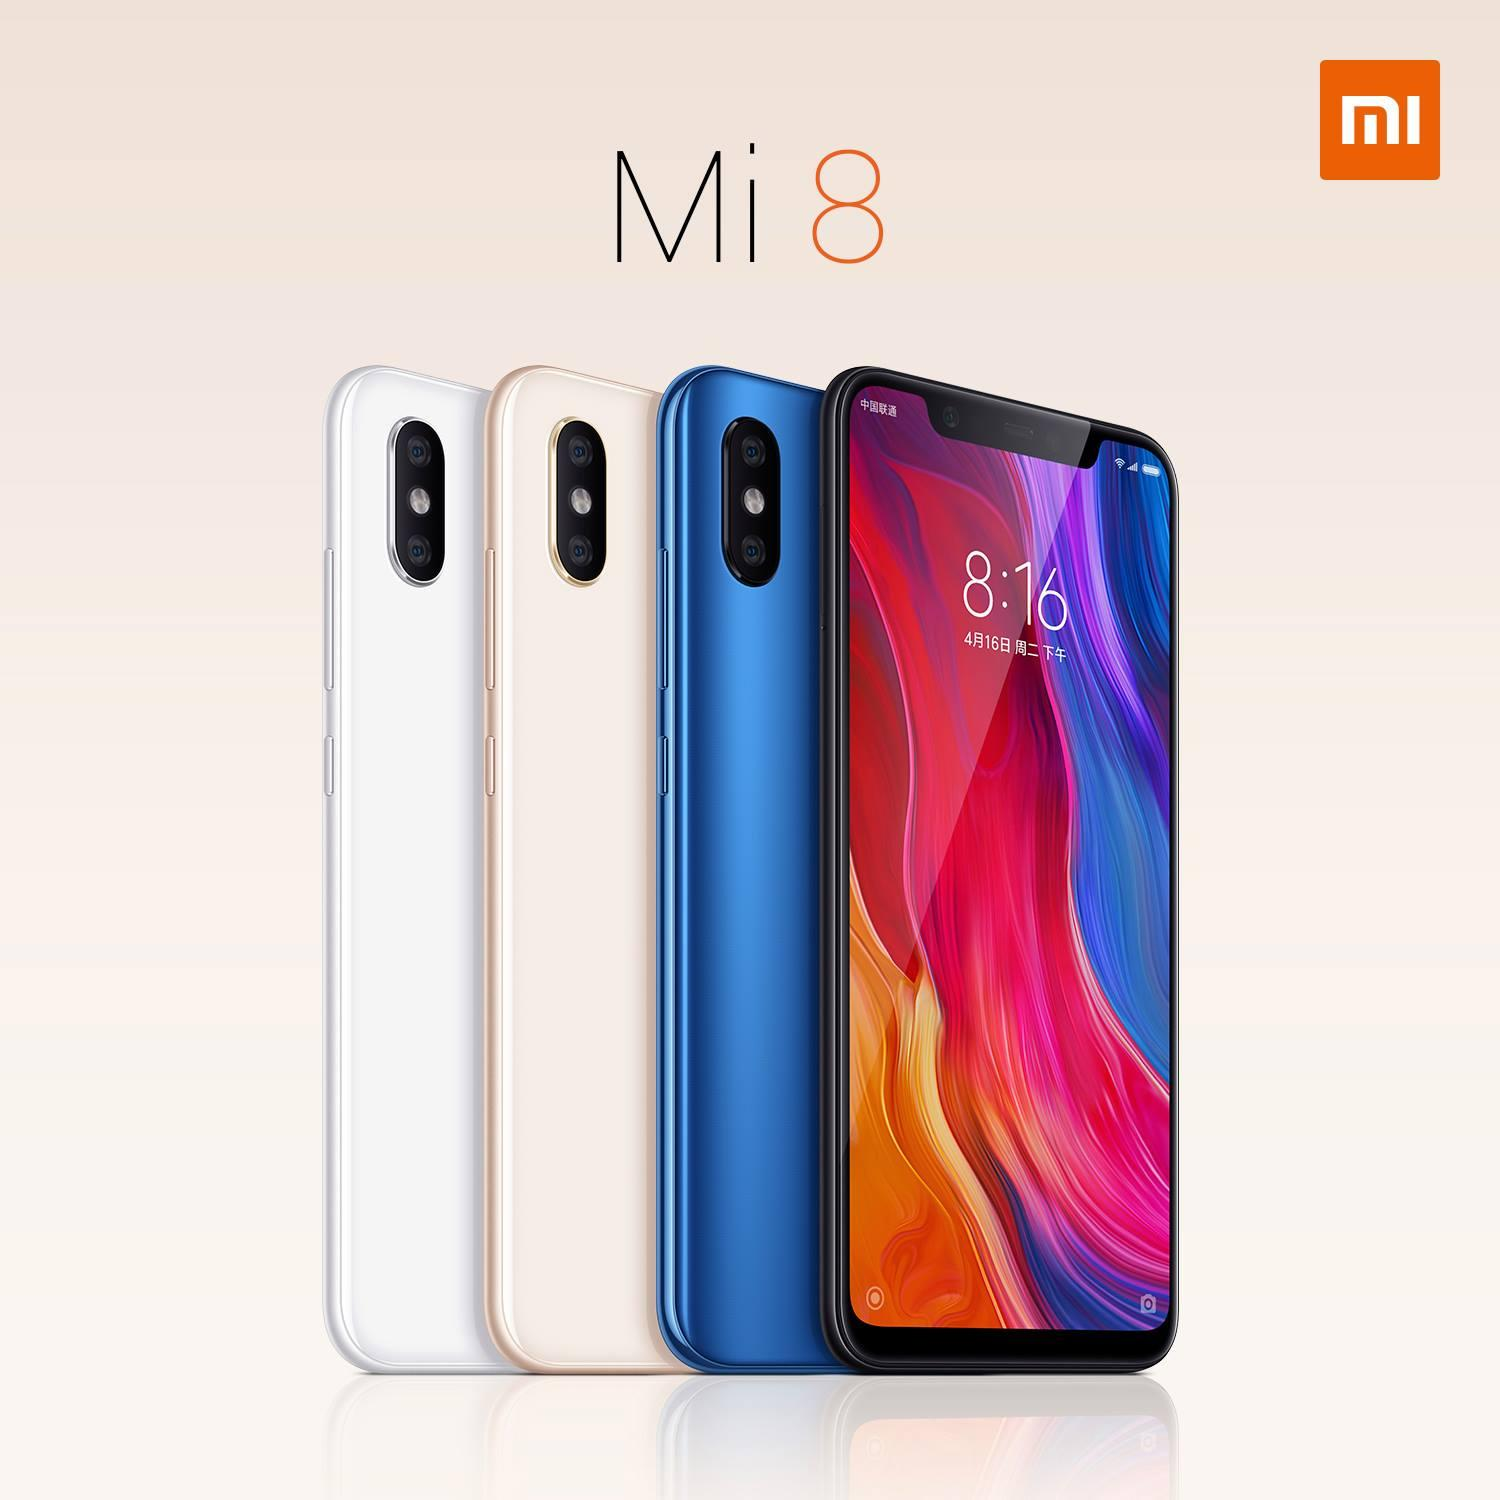 Xiaomi Mi 8 is official with 3D Face Unlock, dual Global Positioning System